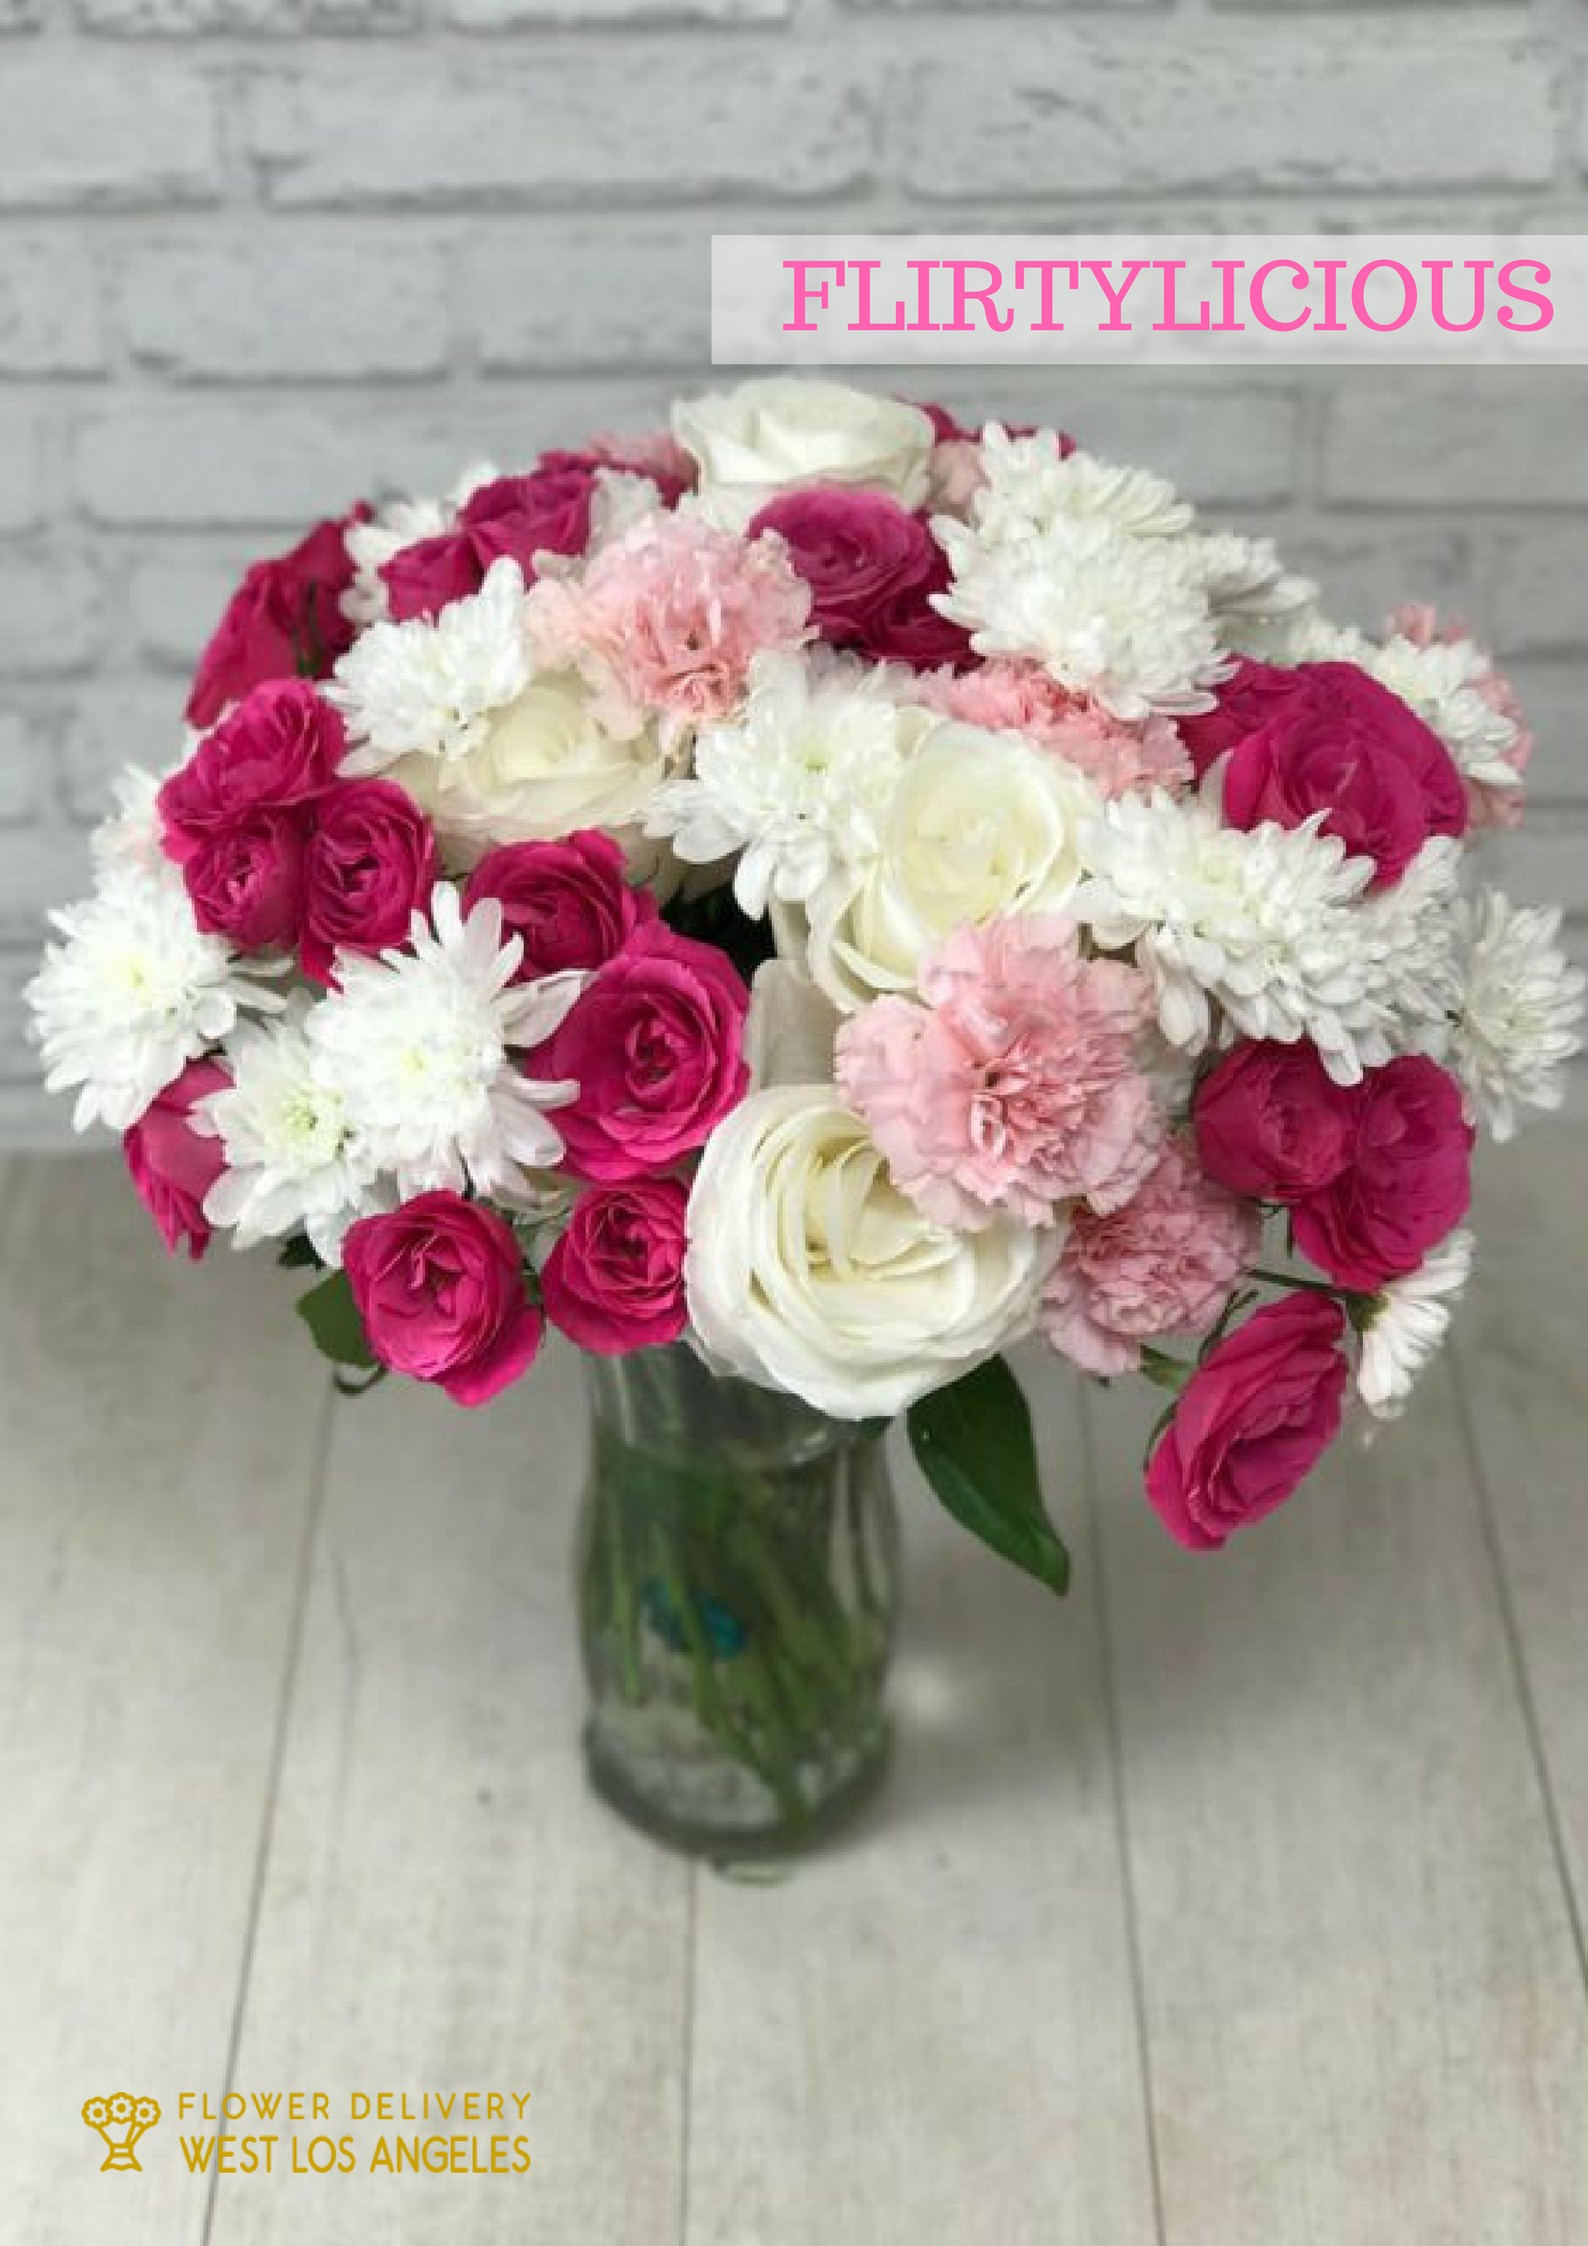 West Los Angeles Flower Delivery Flower Delivery West Los Angeles